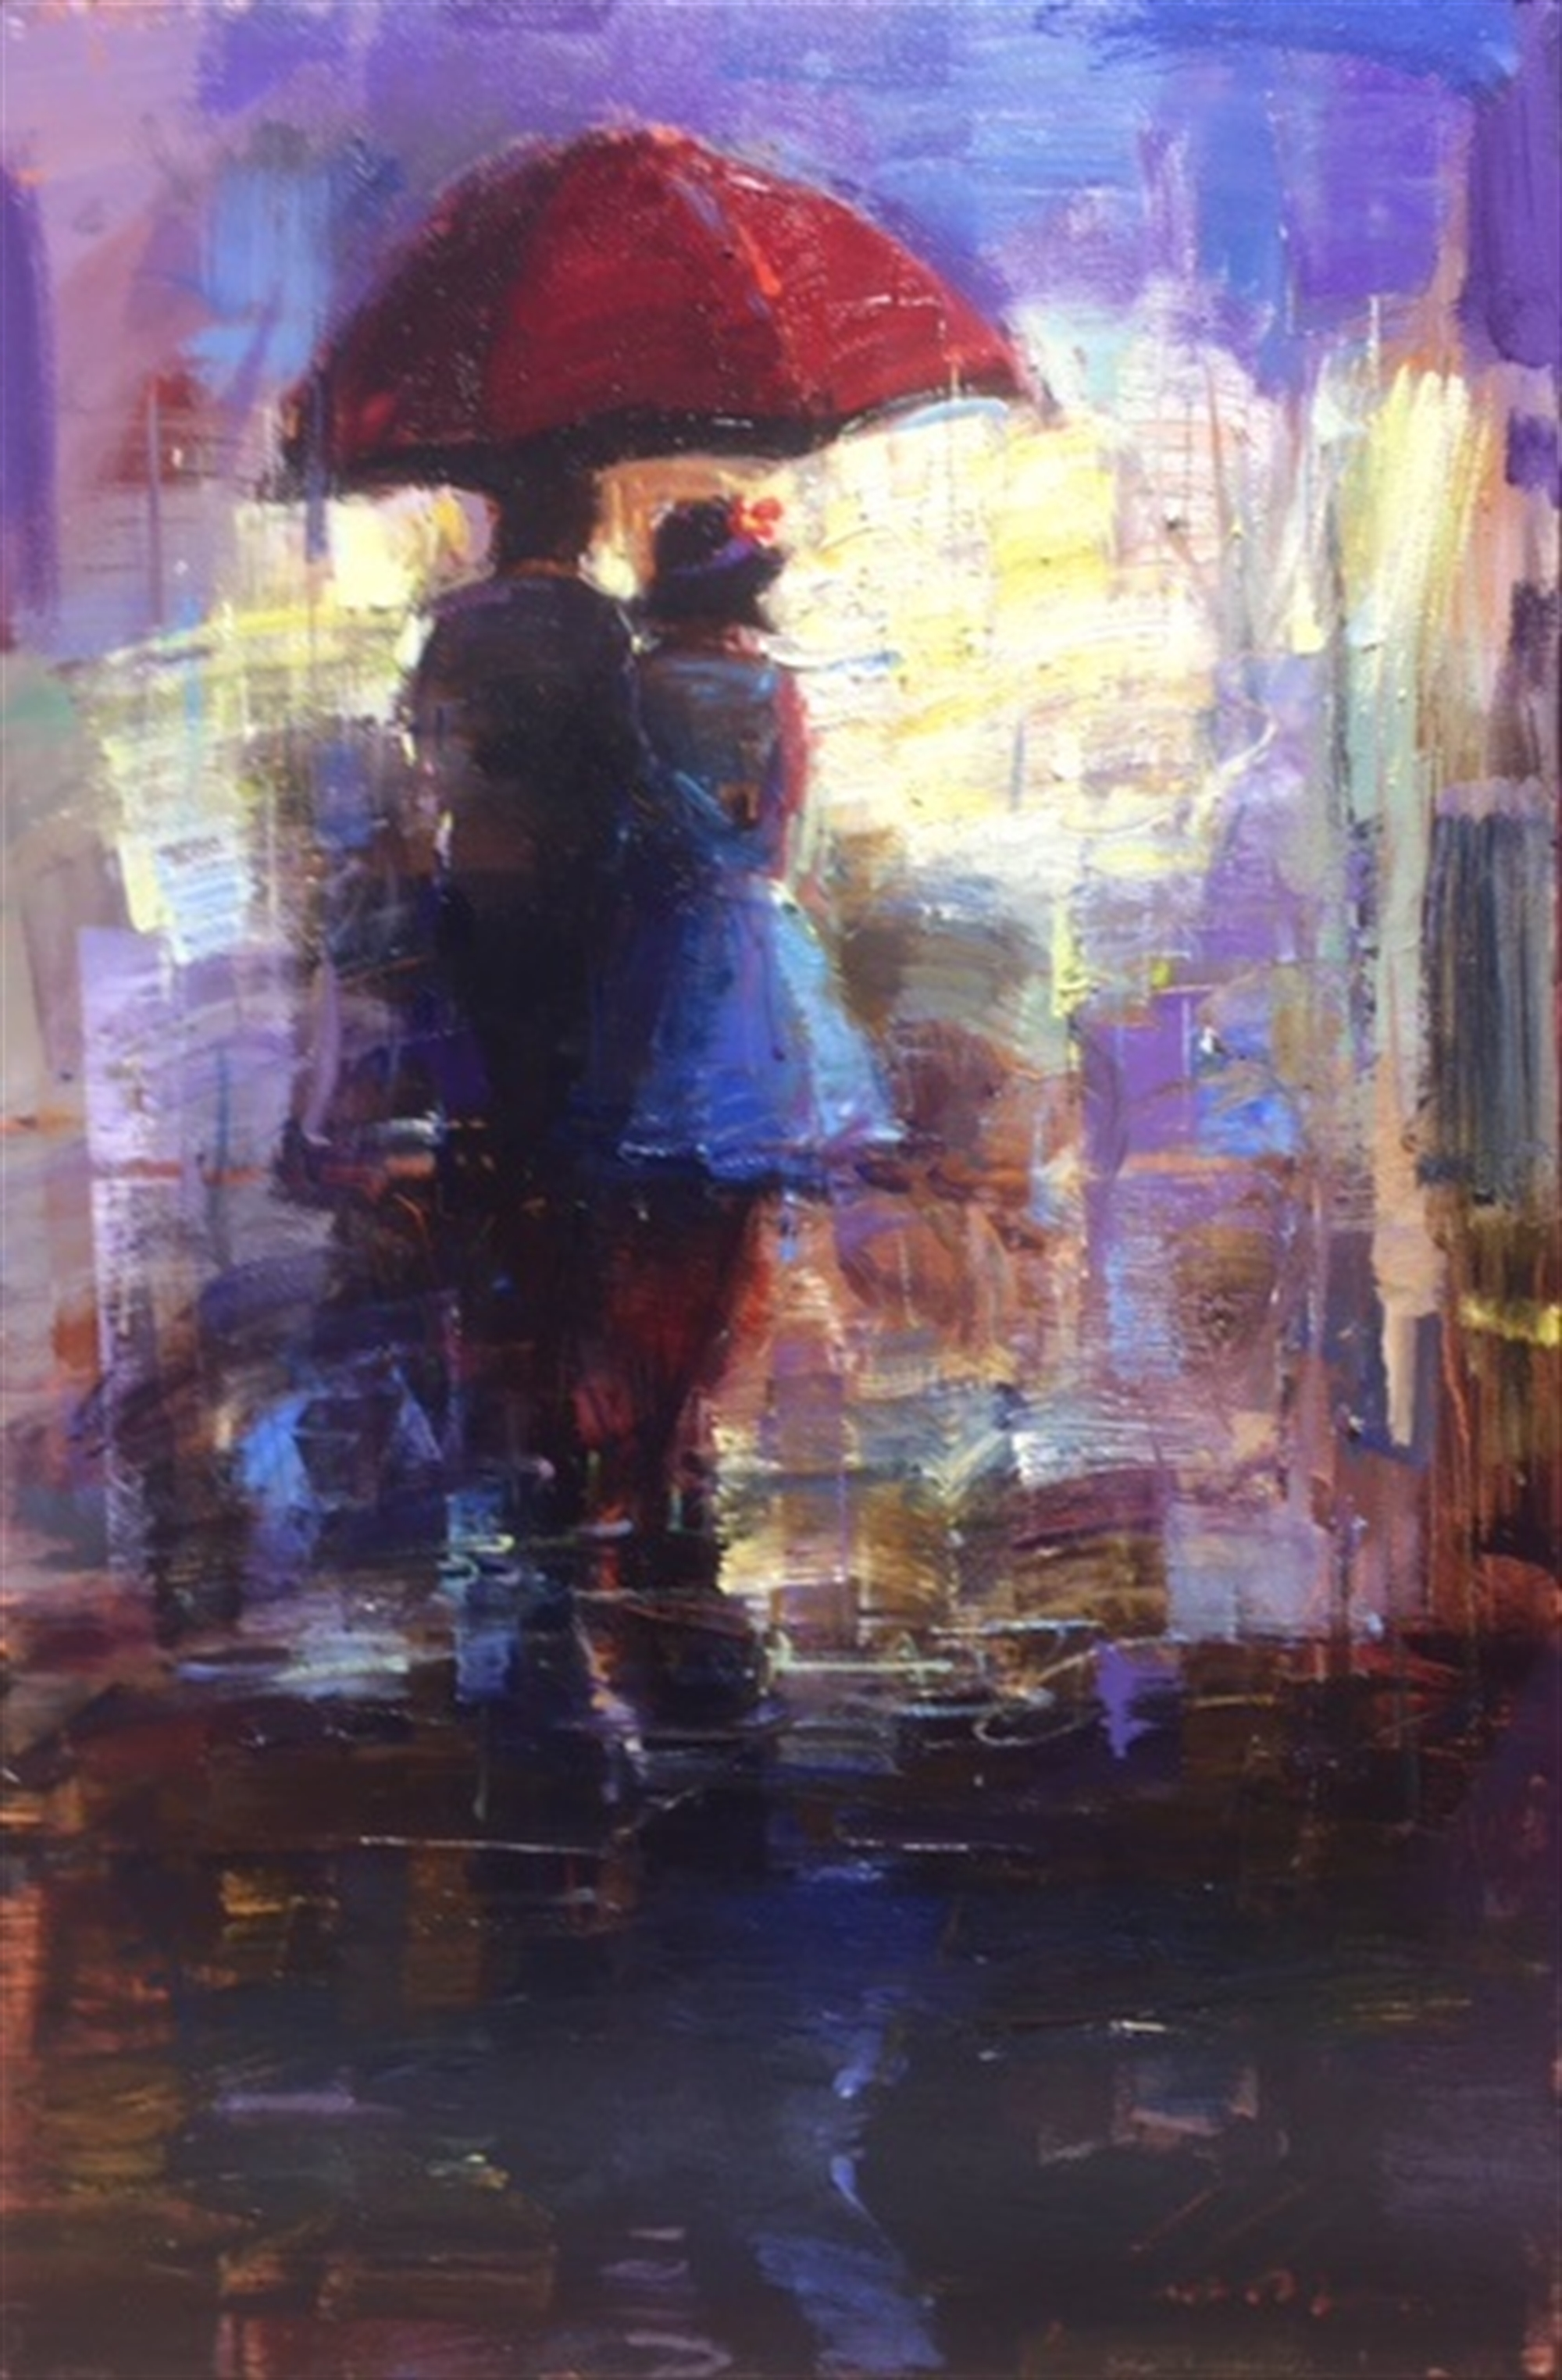 The Red Umbrella by Michael Flohr